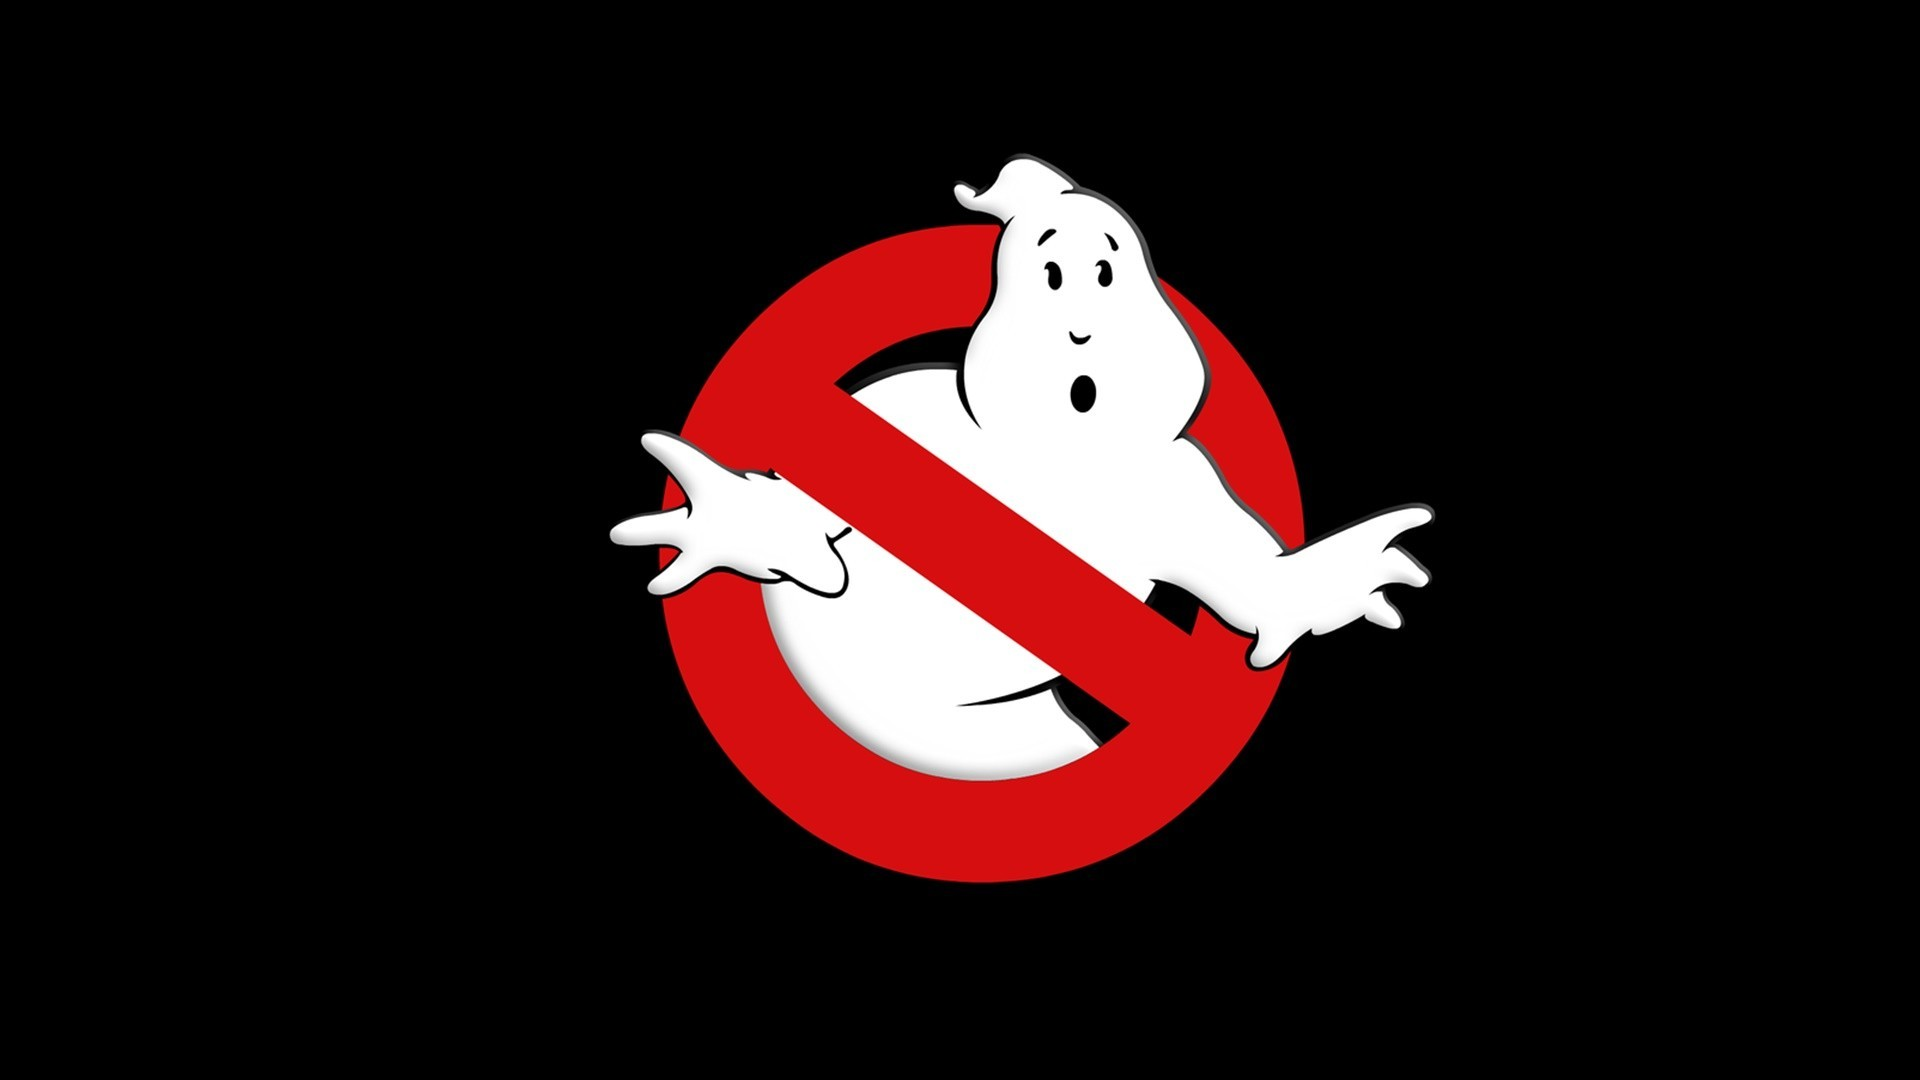 20 Amazing Ghostbusters Wallpaper - My Free Wallpapers Hub